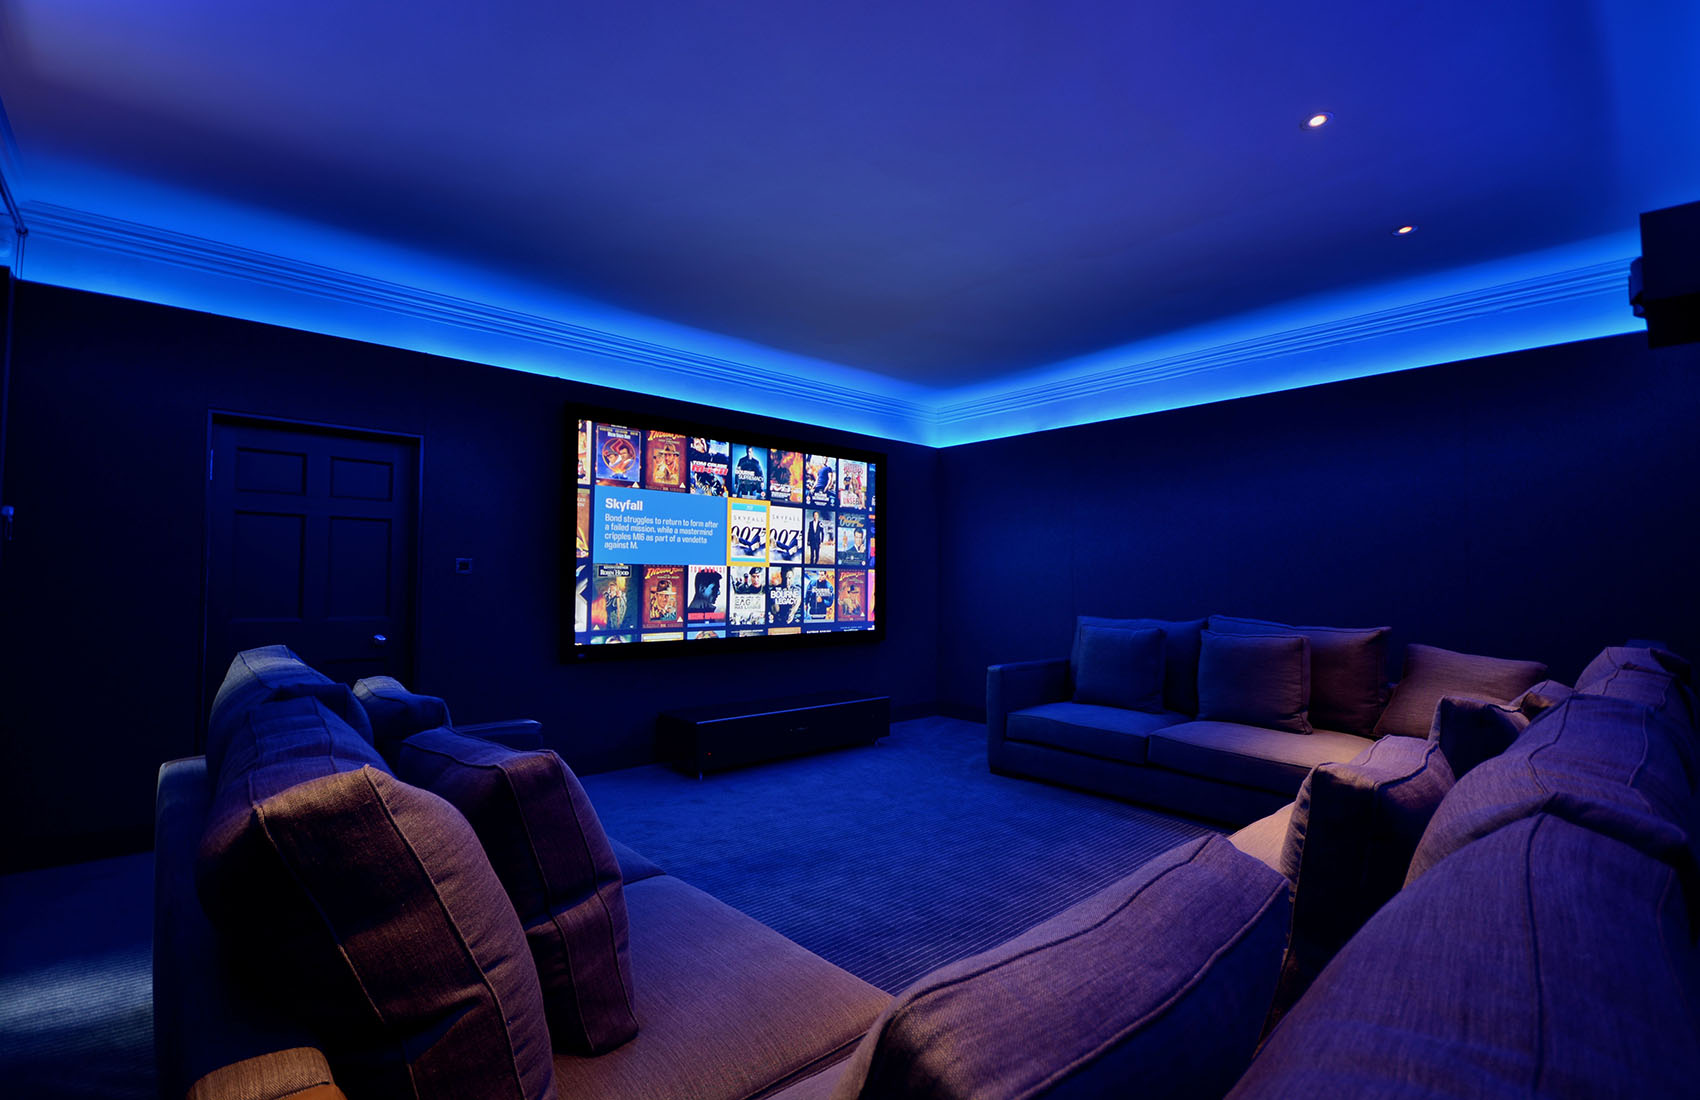 attic conversion ideas pinterest - 1000 images about Cinema rooms on Pinterest